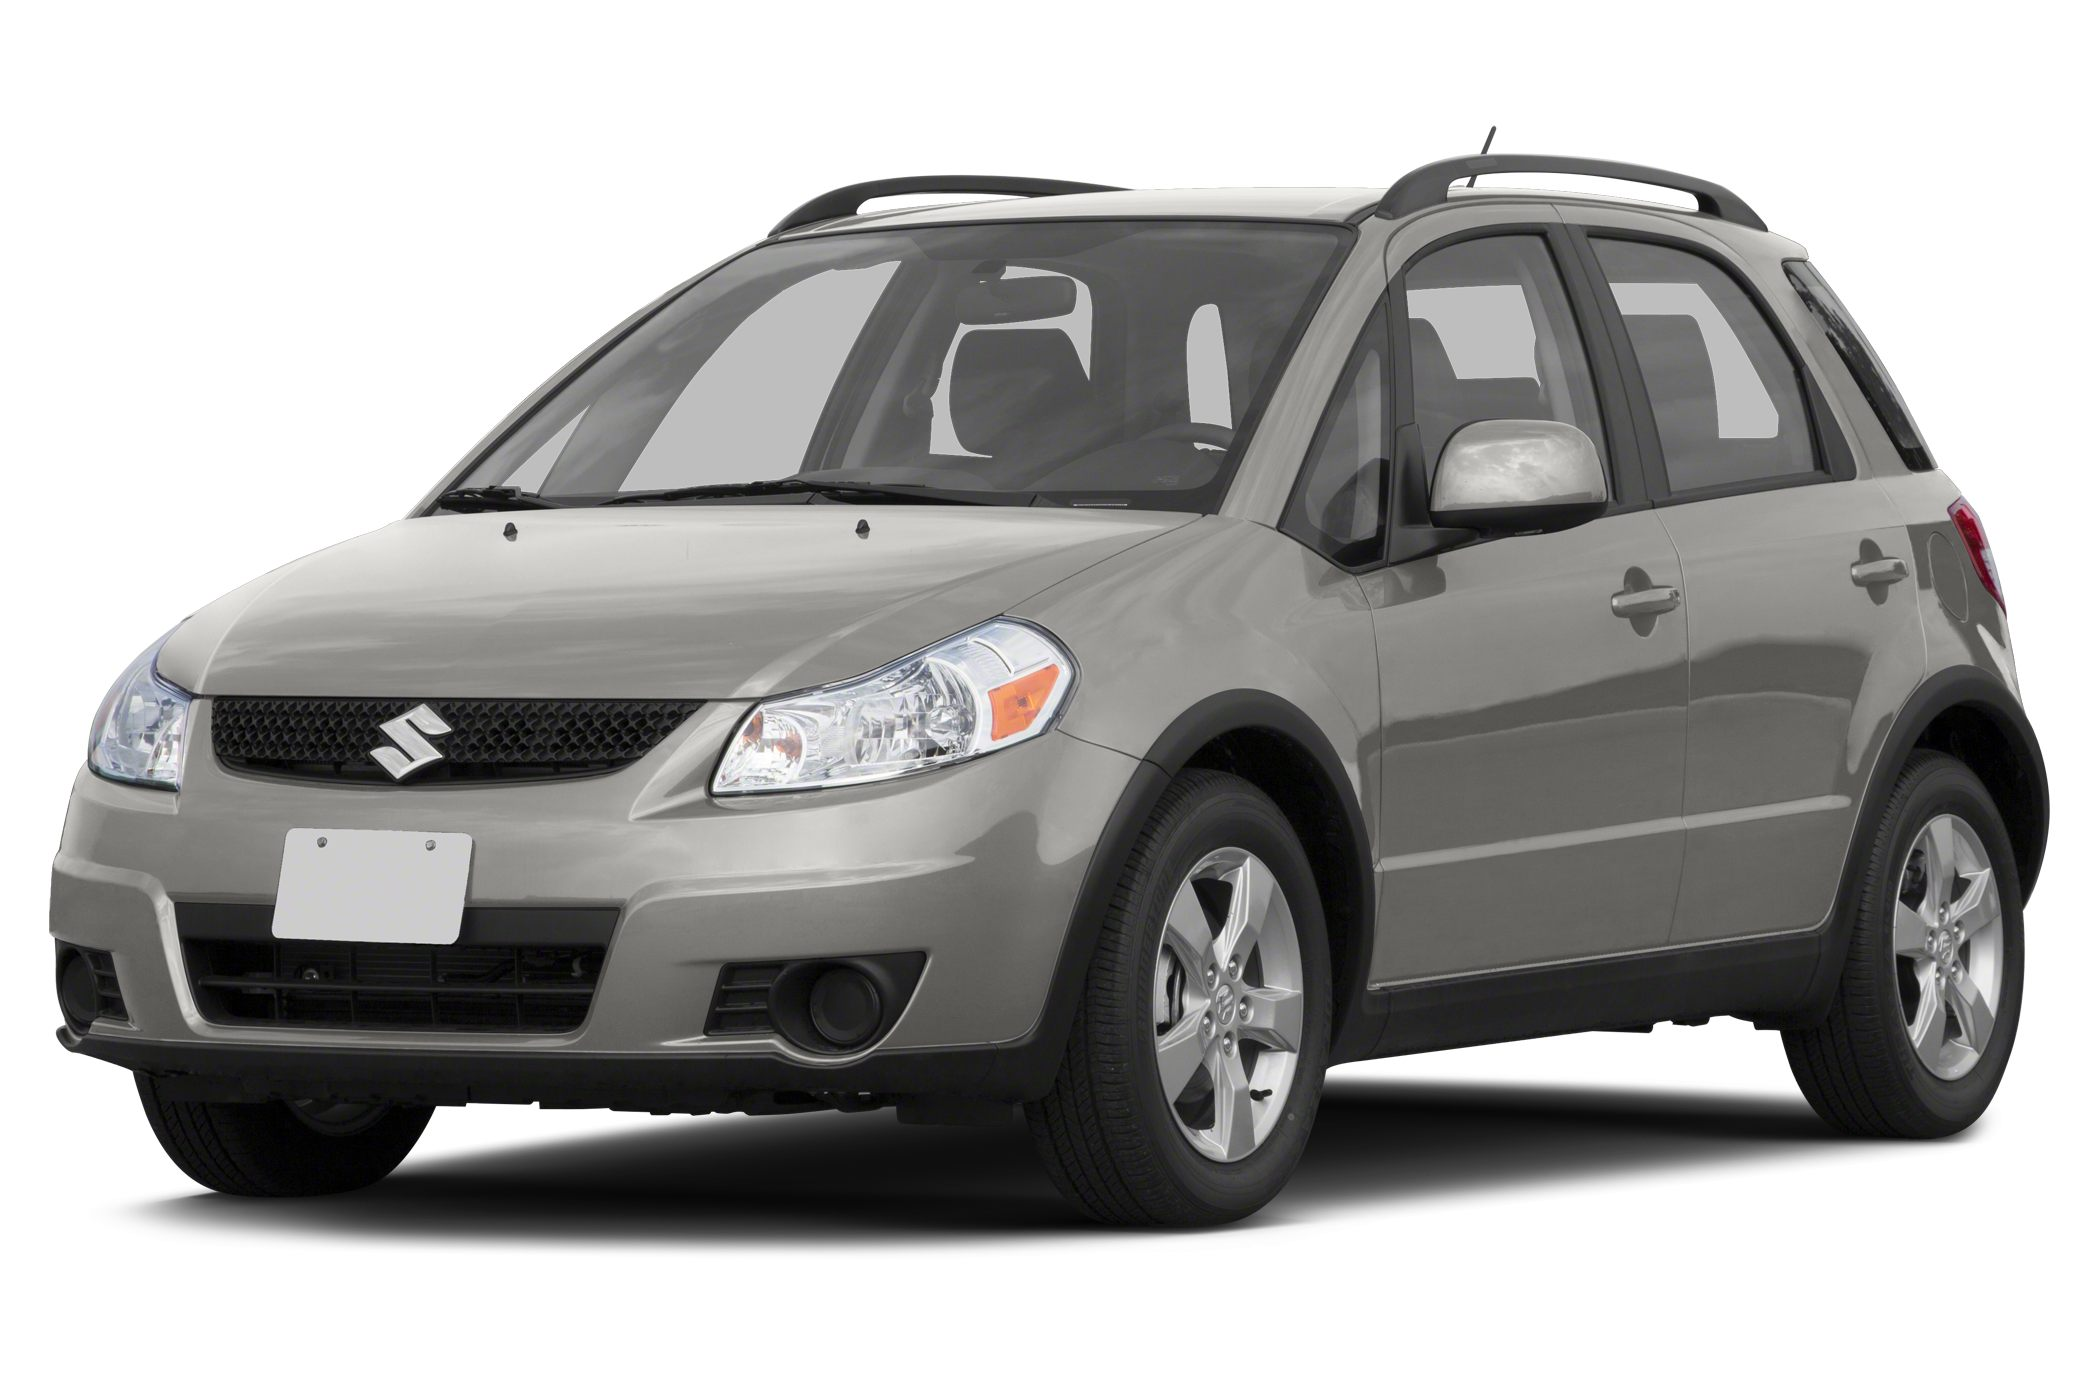 2013 Suzuki SX4